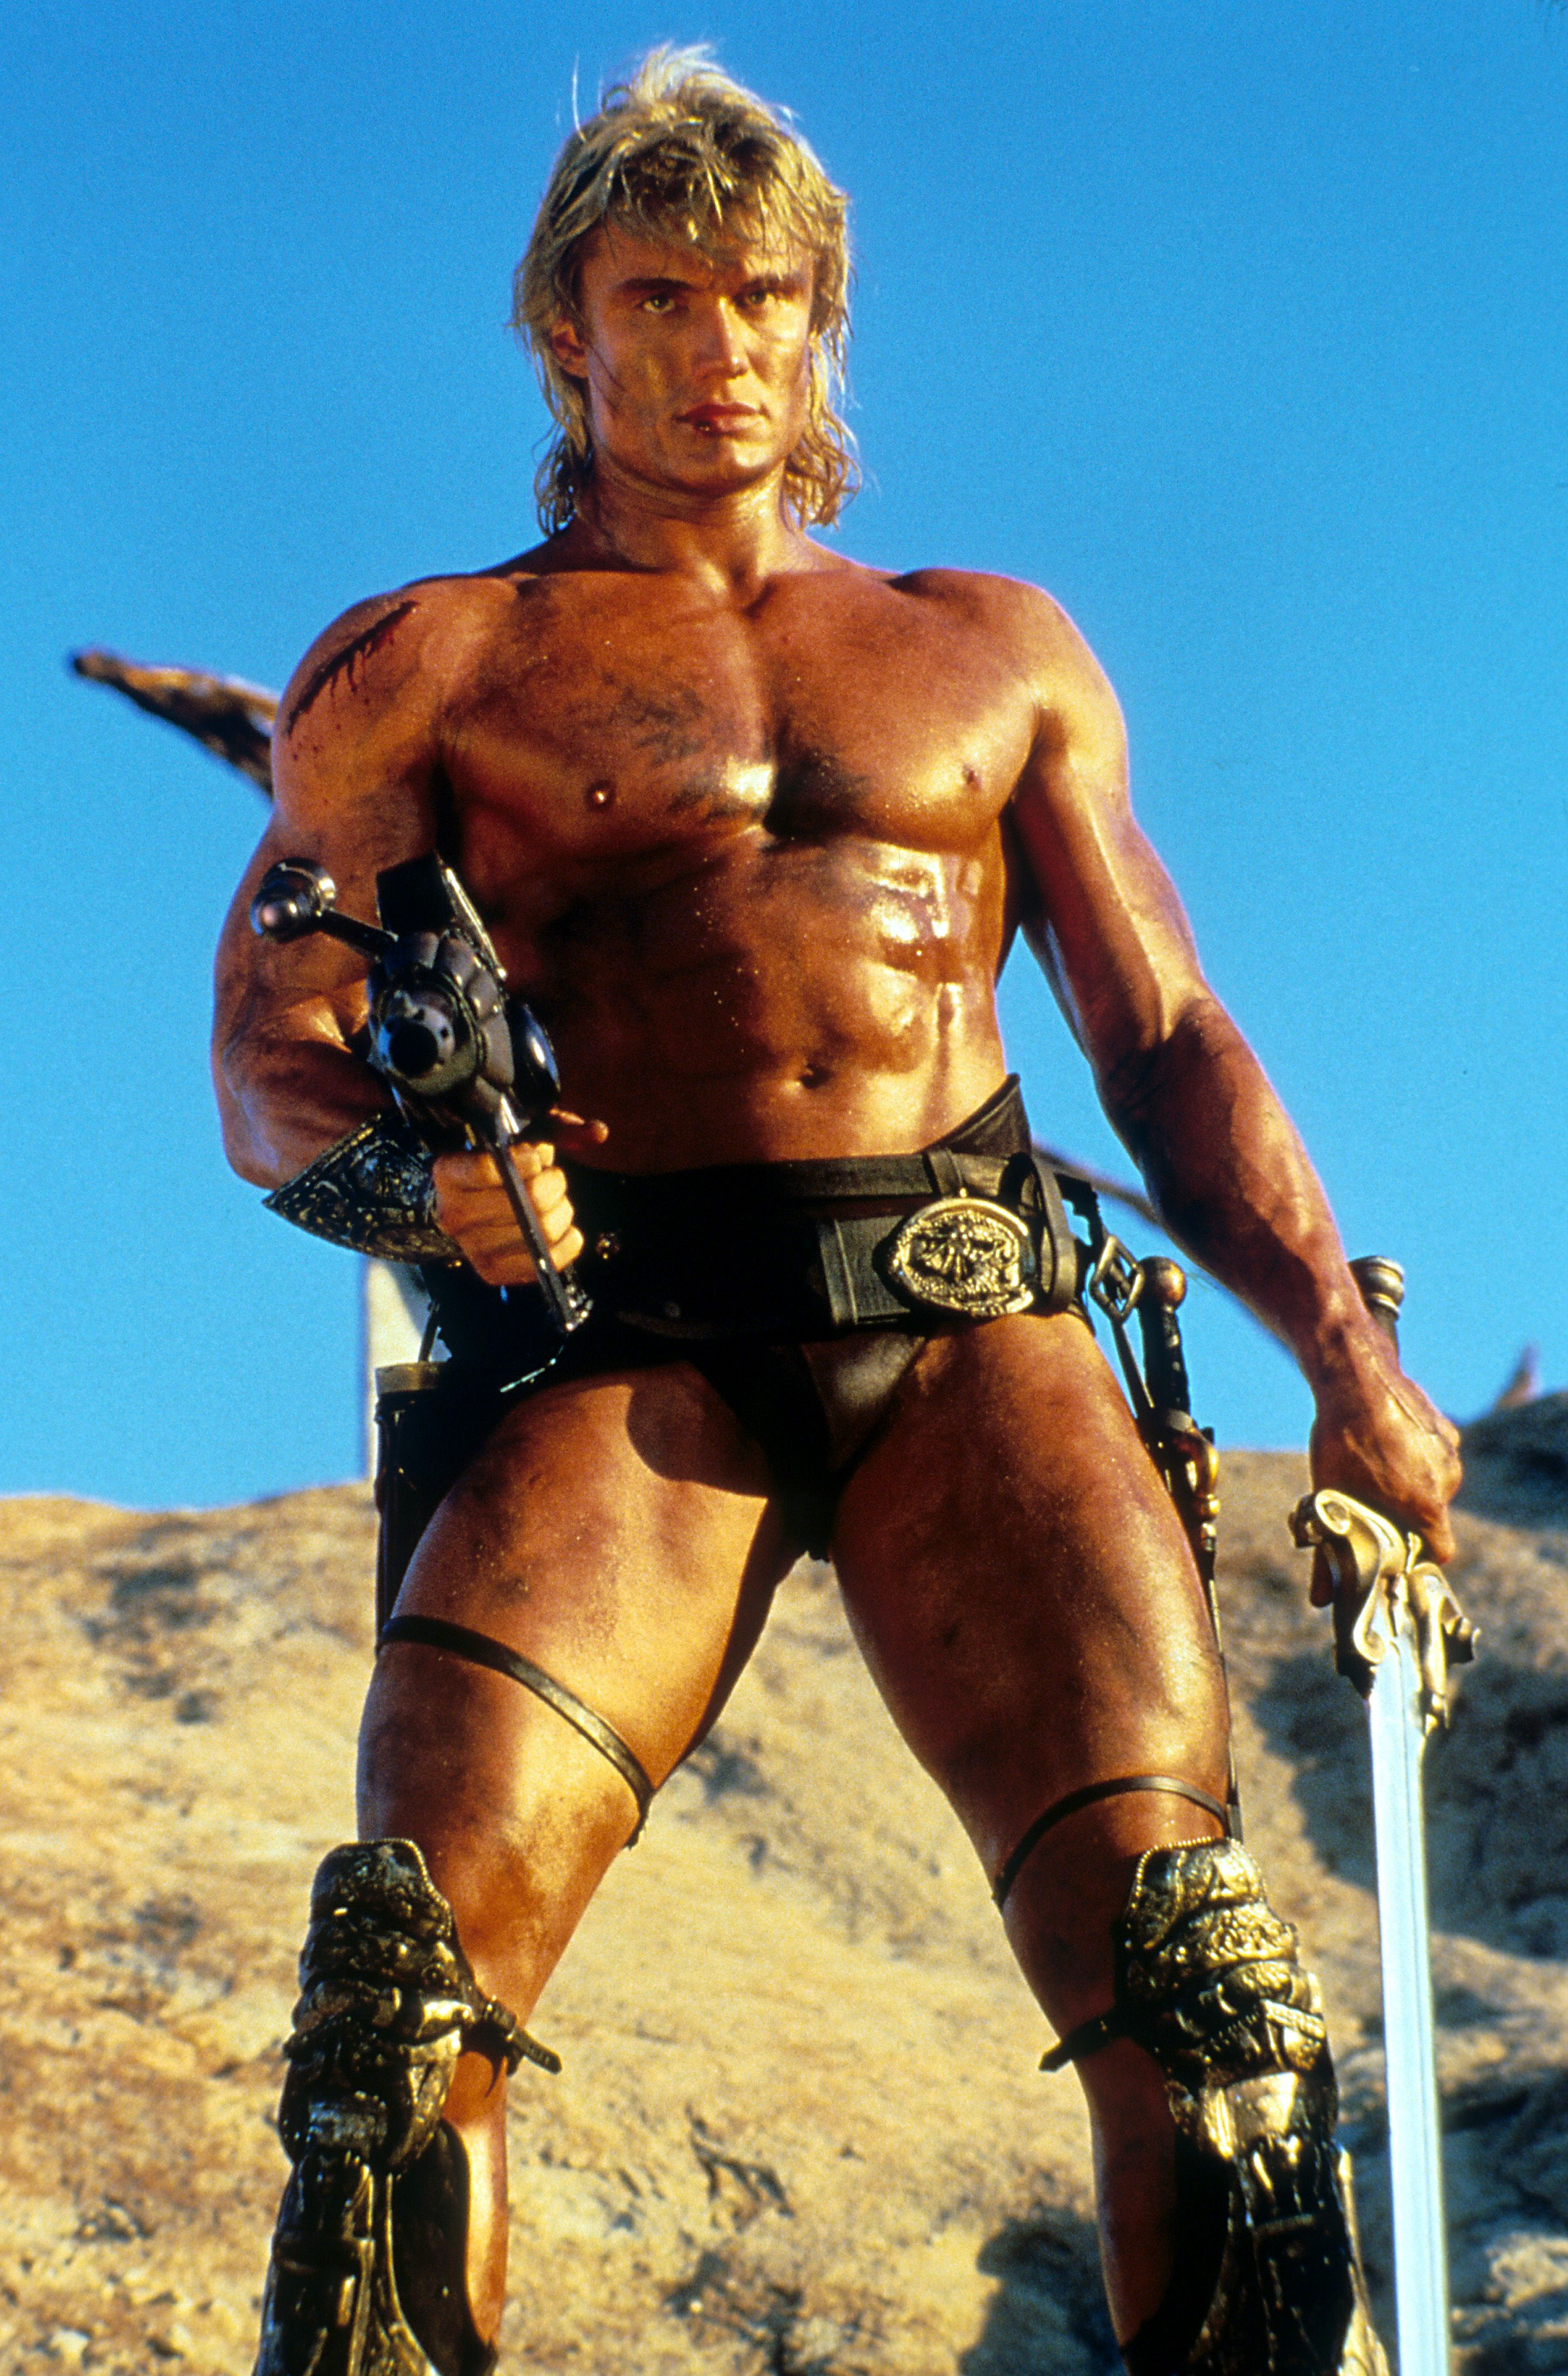 Masters of the Universe reboot - What in the name of Greyskull is happening?